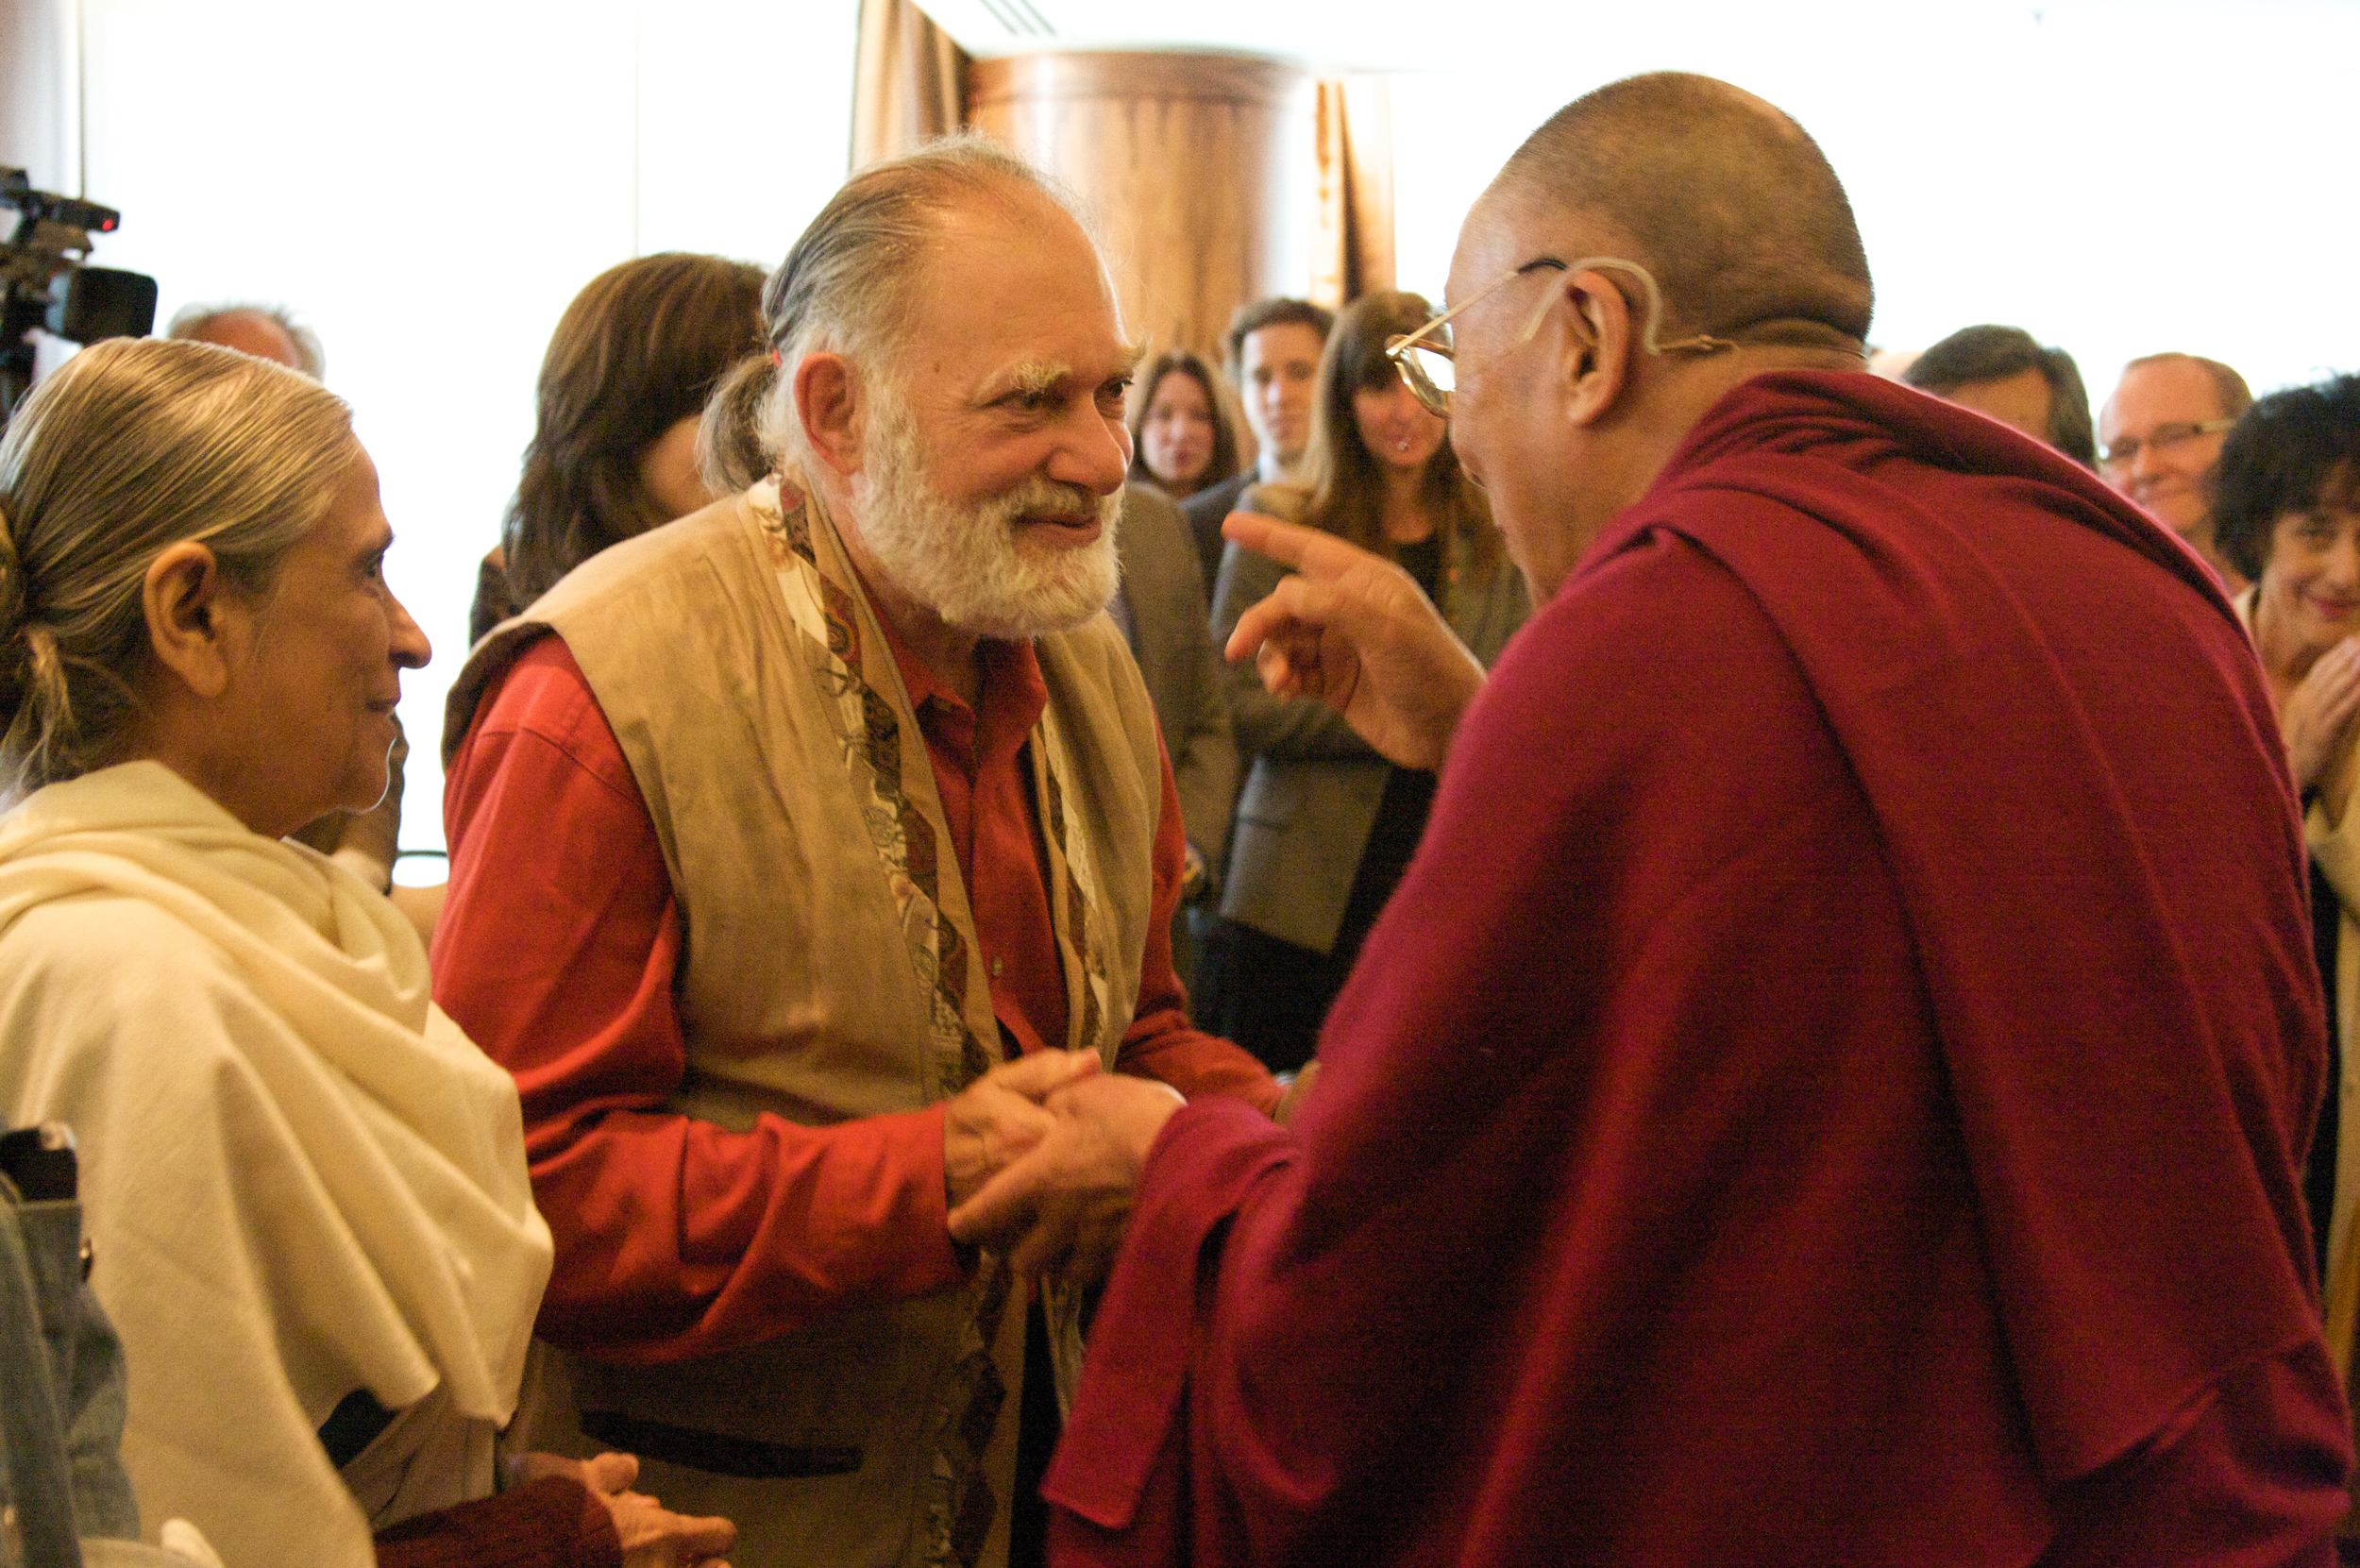 Vancouver Peace Conference with The Dalai Lama in 2009